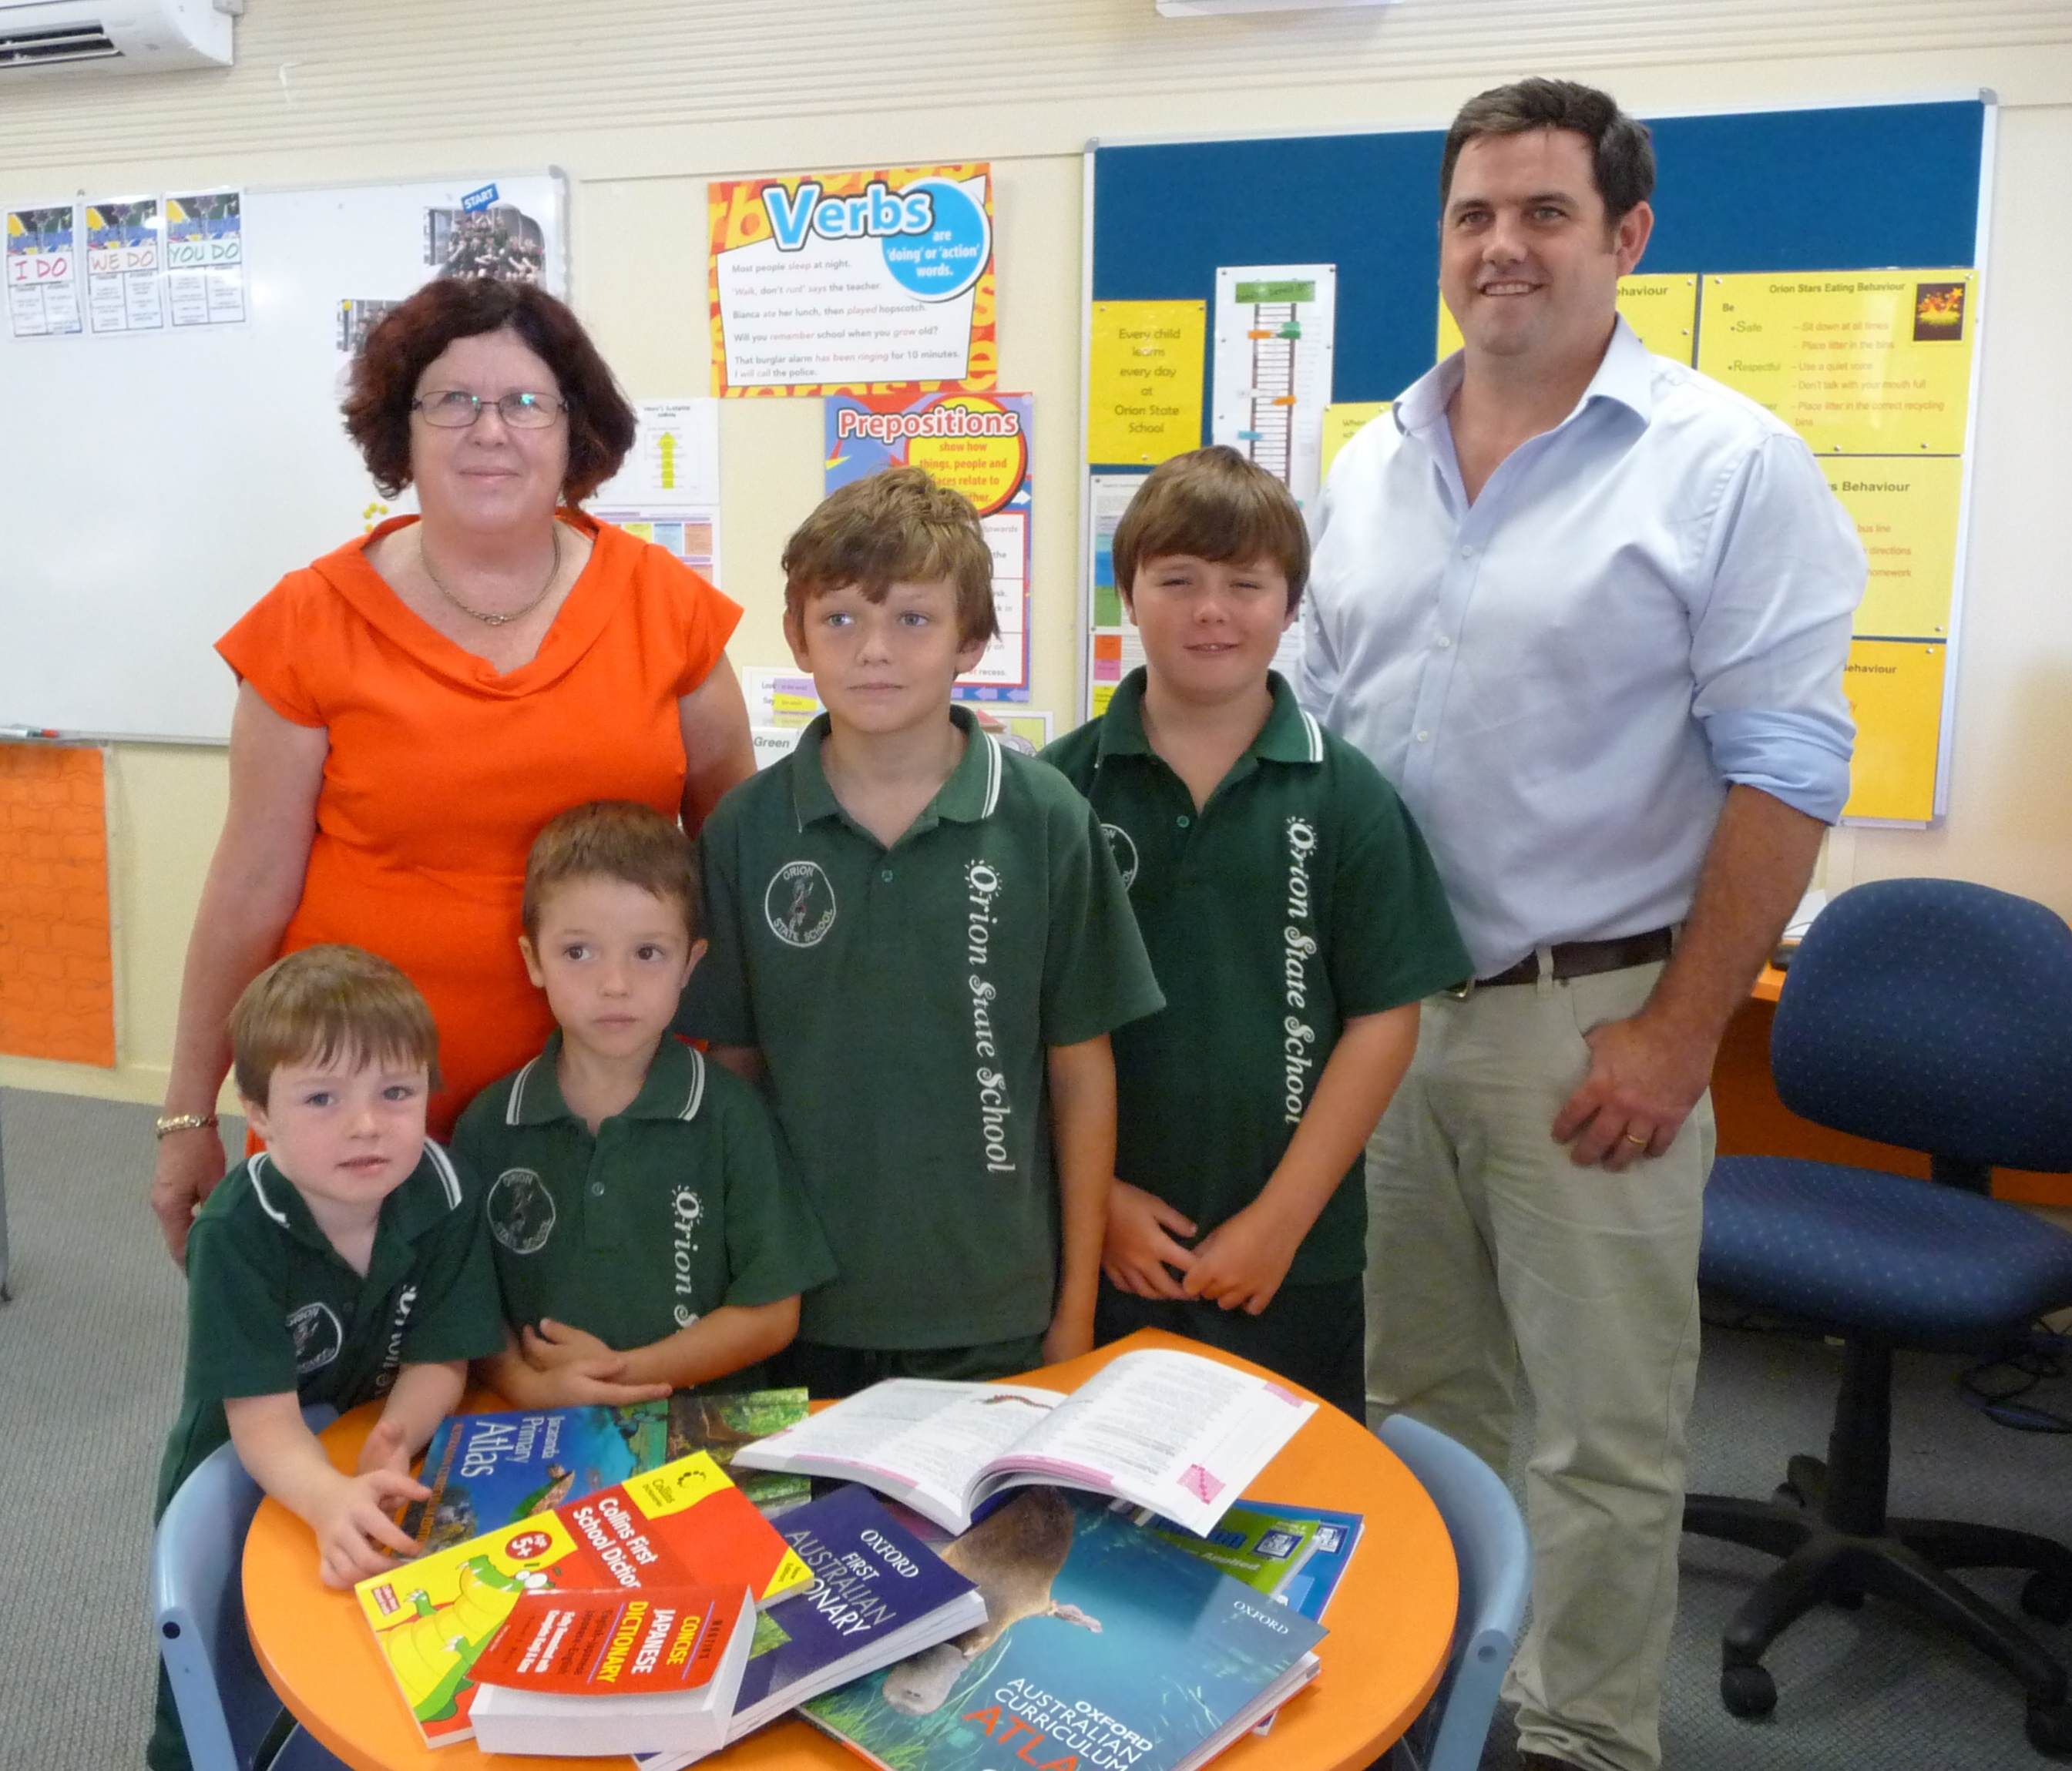 Philp Brodie Grain gives local primary school a learning